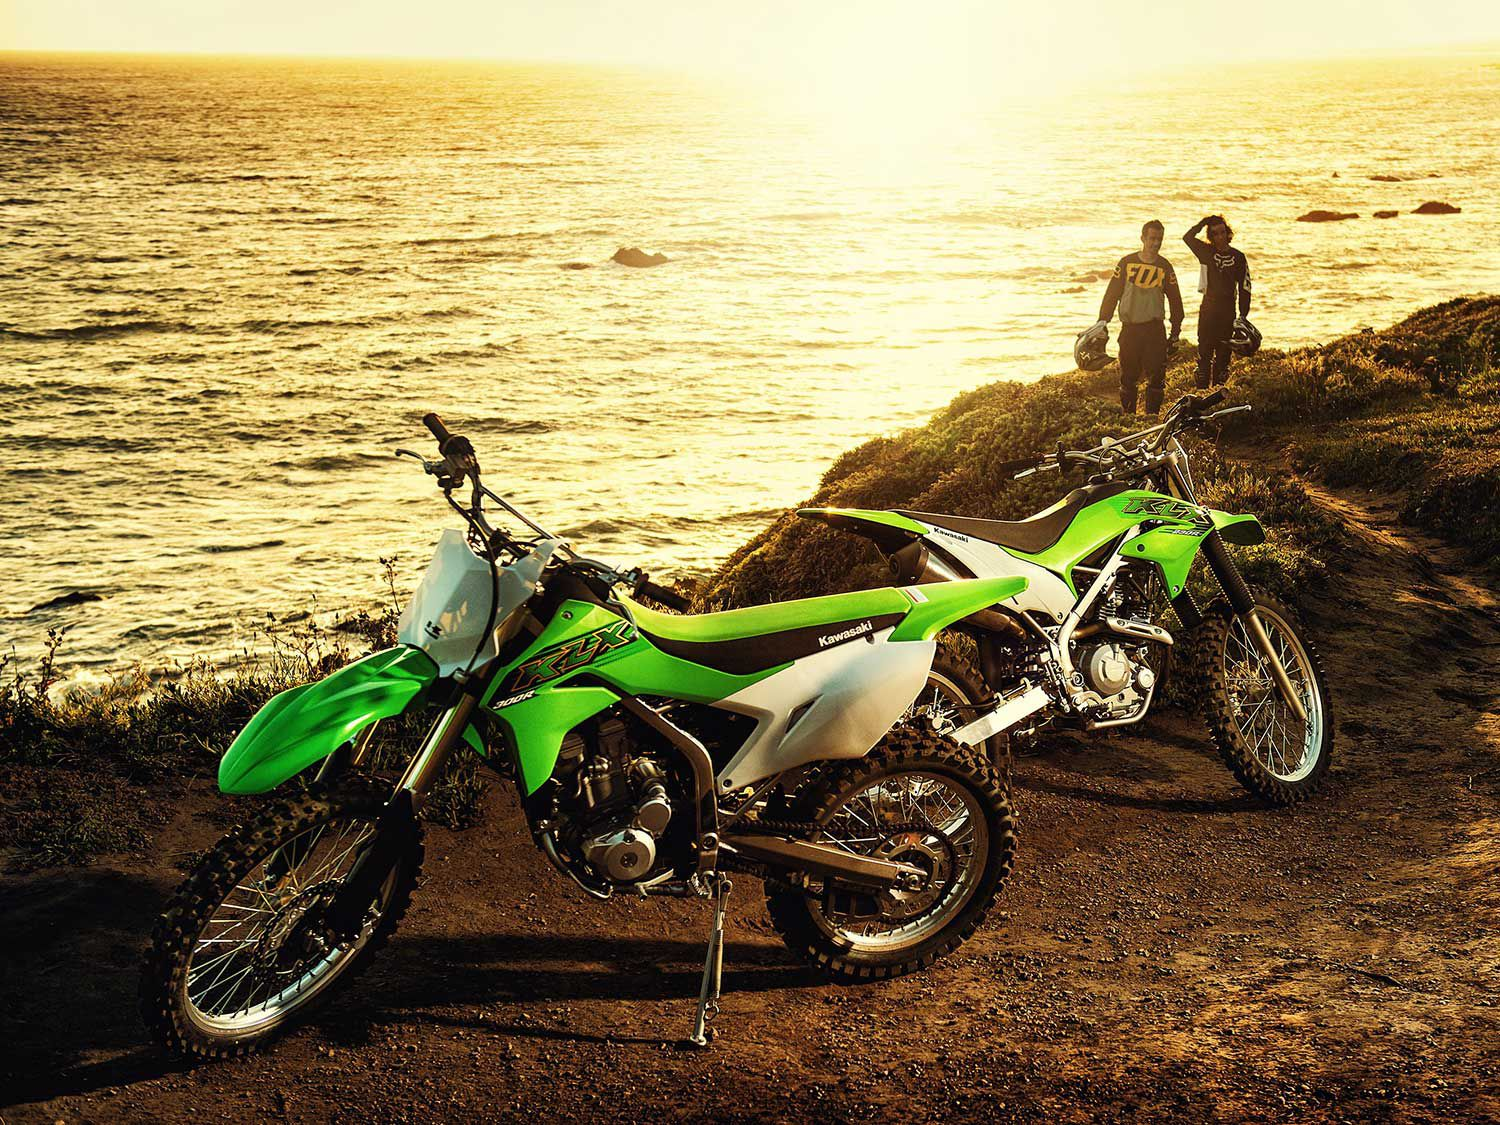 "<a href=""https://www.motorcyclistonline.com/2020-kawasaki-klx300r-first-look/"">2020 Kawasaki KLX300R First Look</a>"